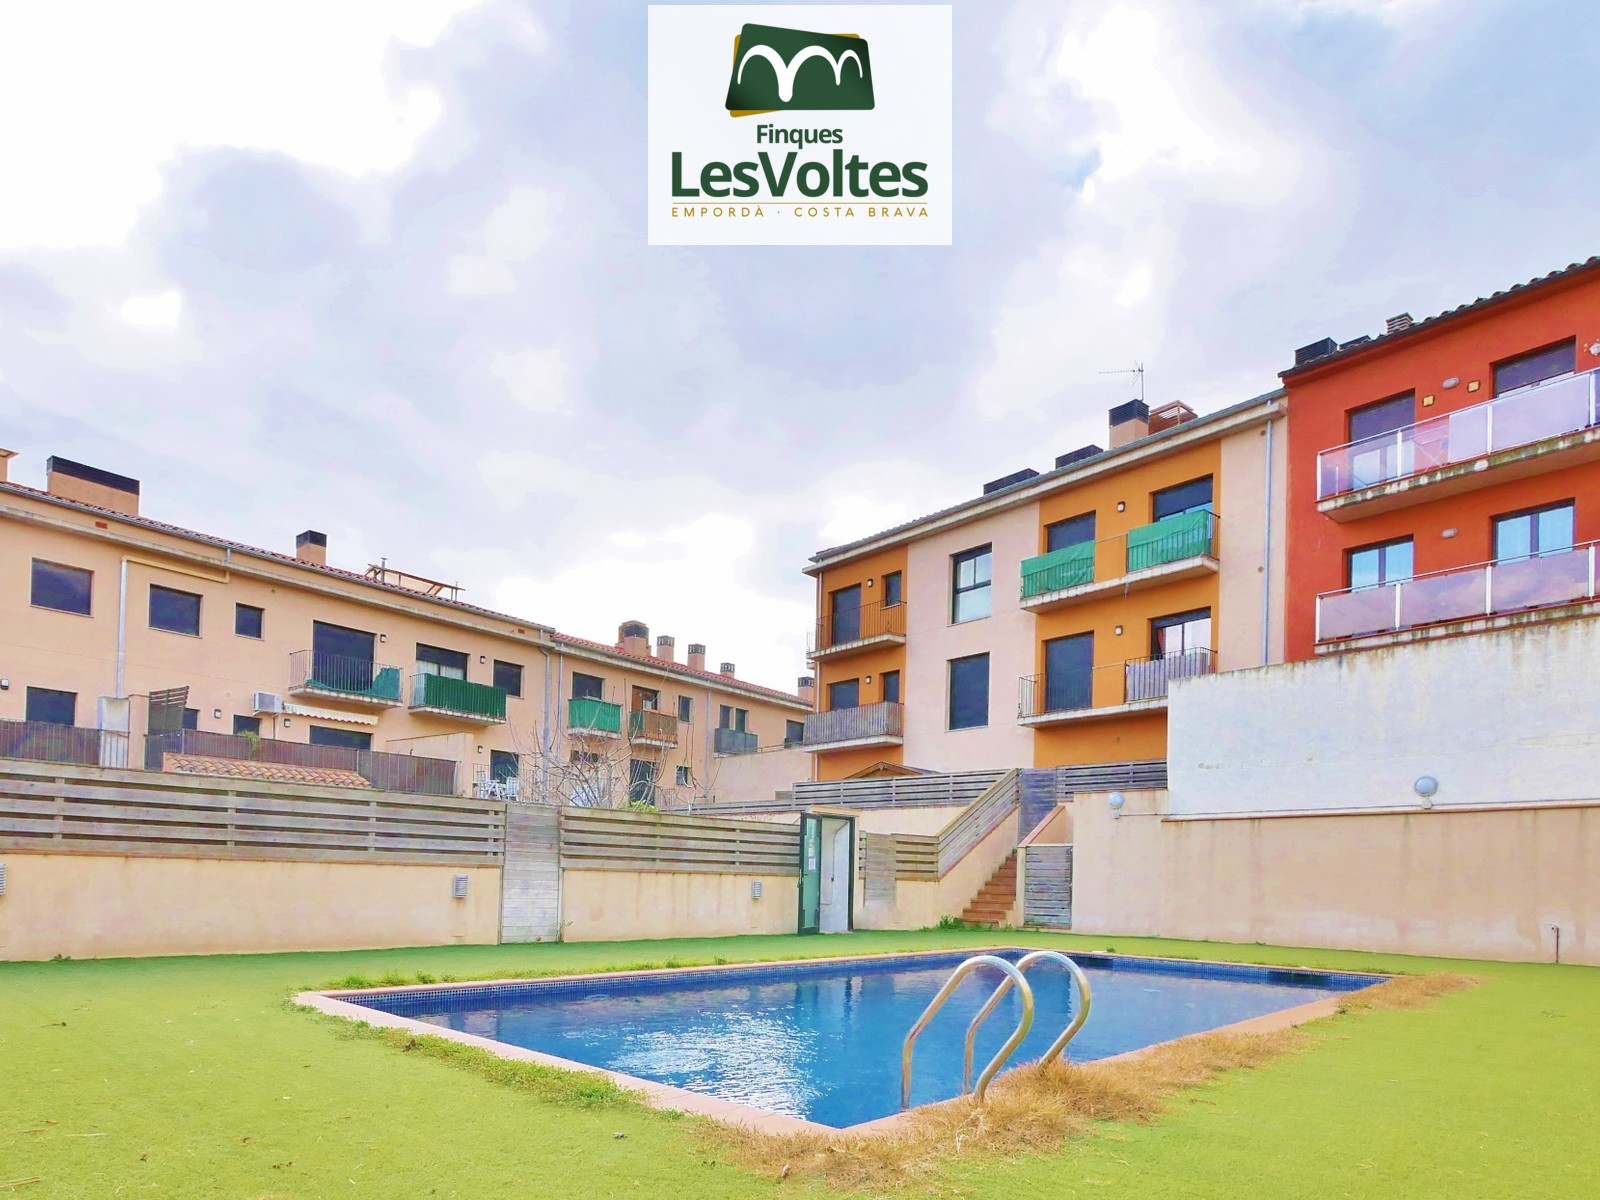 Apartment with parking space and community pool for sale in Palafrugell. Community with elevator, garden and swimming pool.